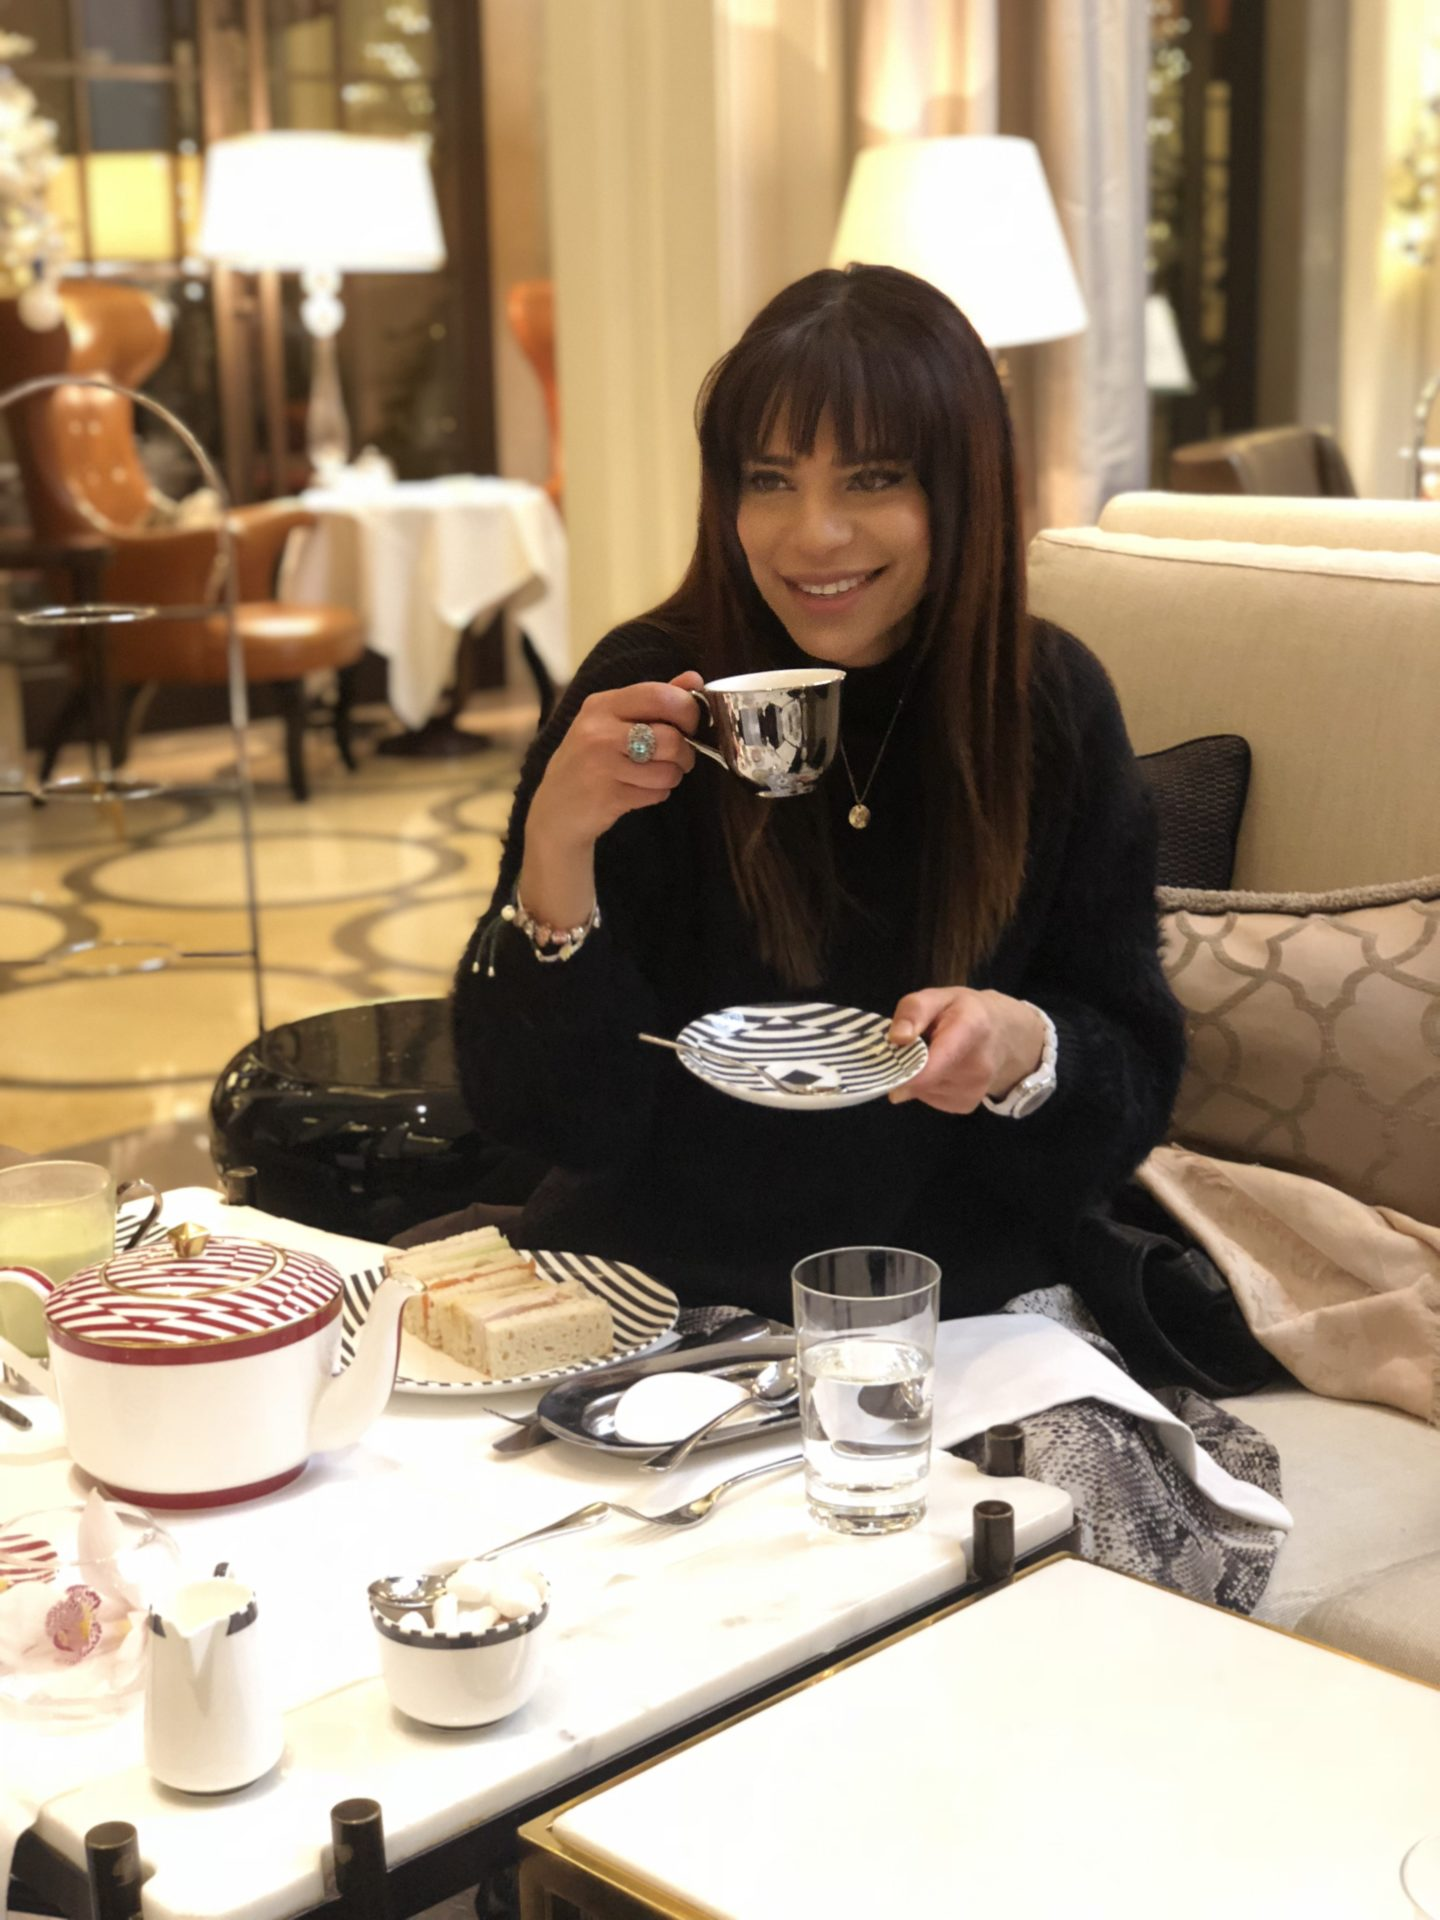 Corinthia Hotel Luxury Afternoon Tea